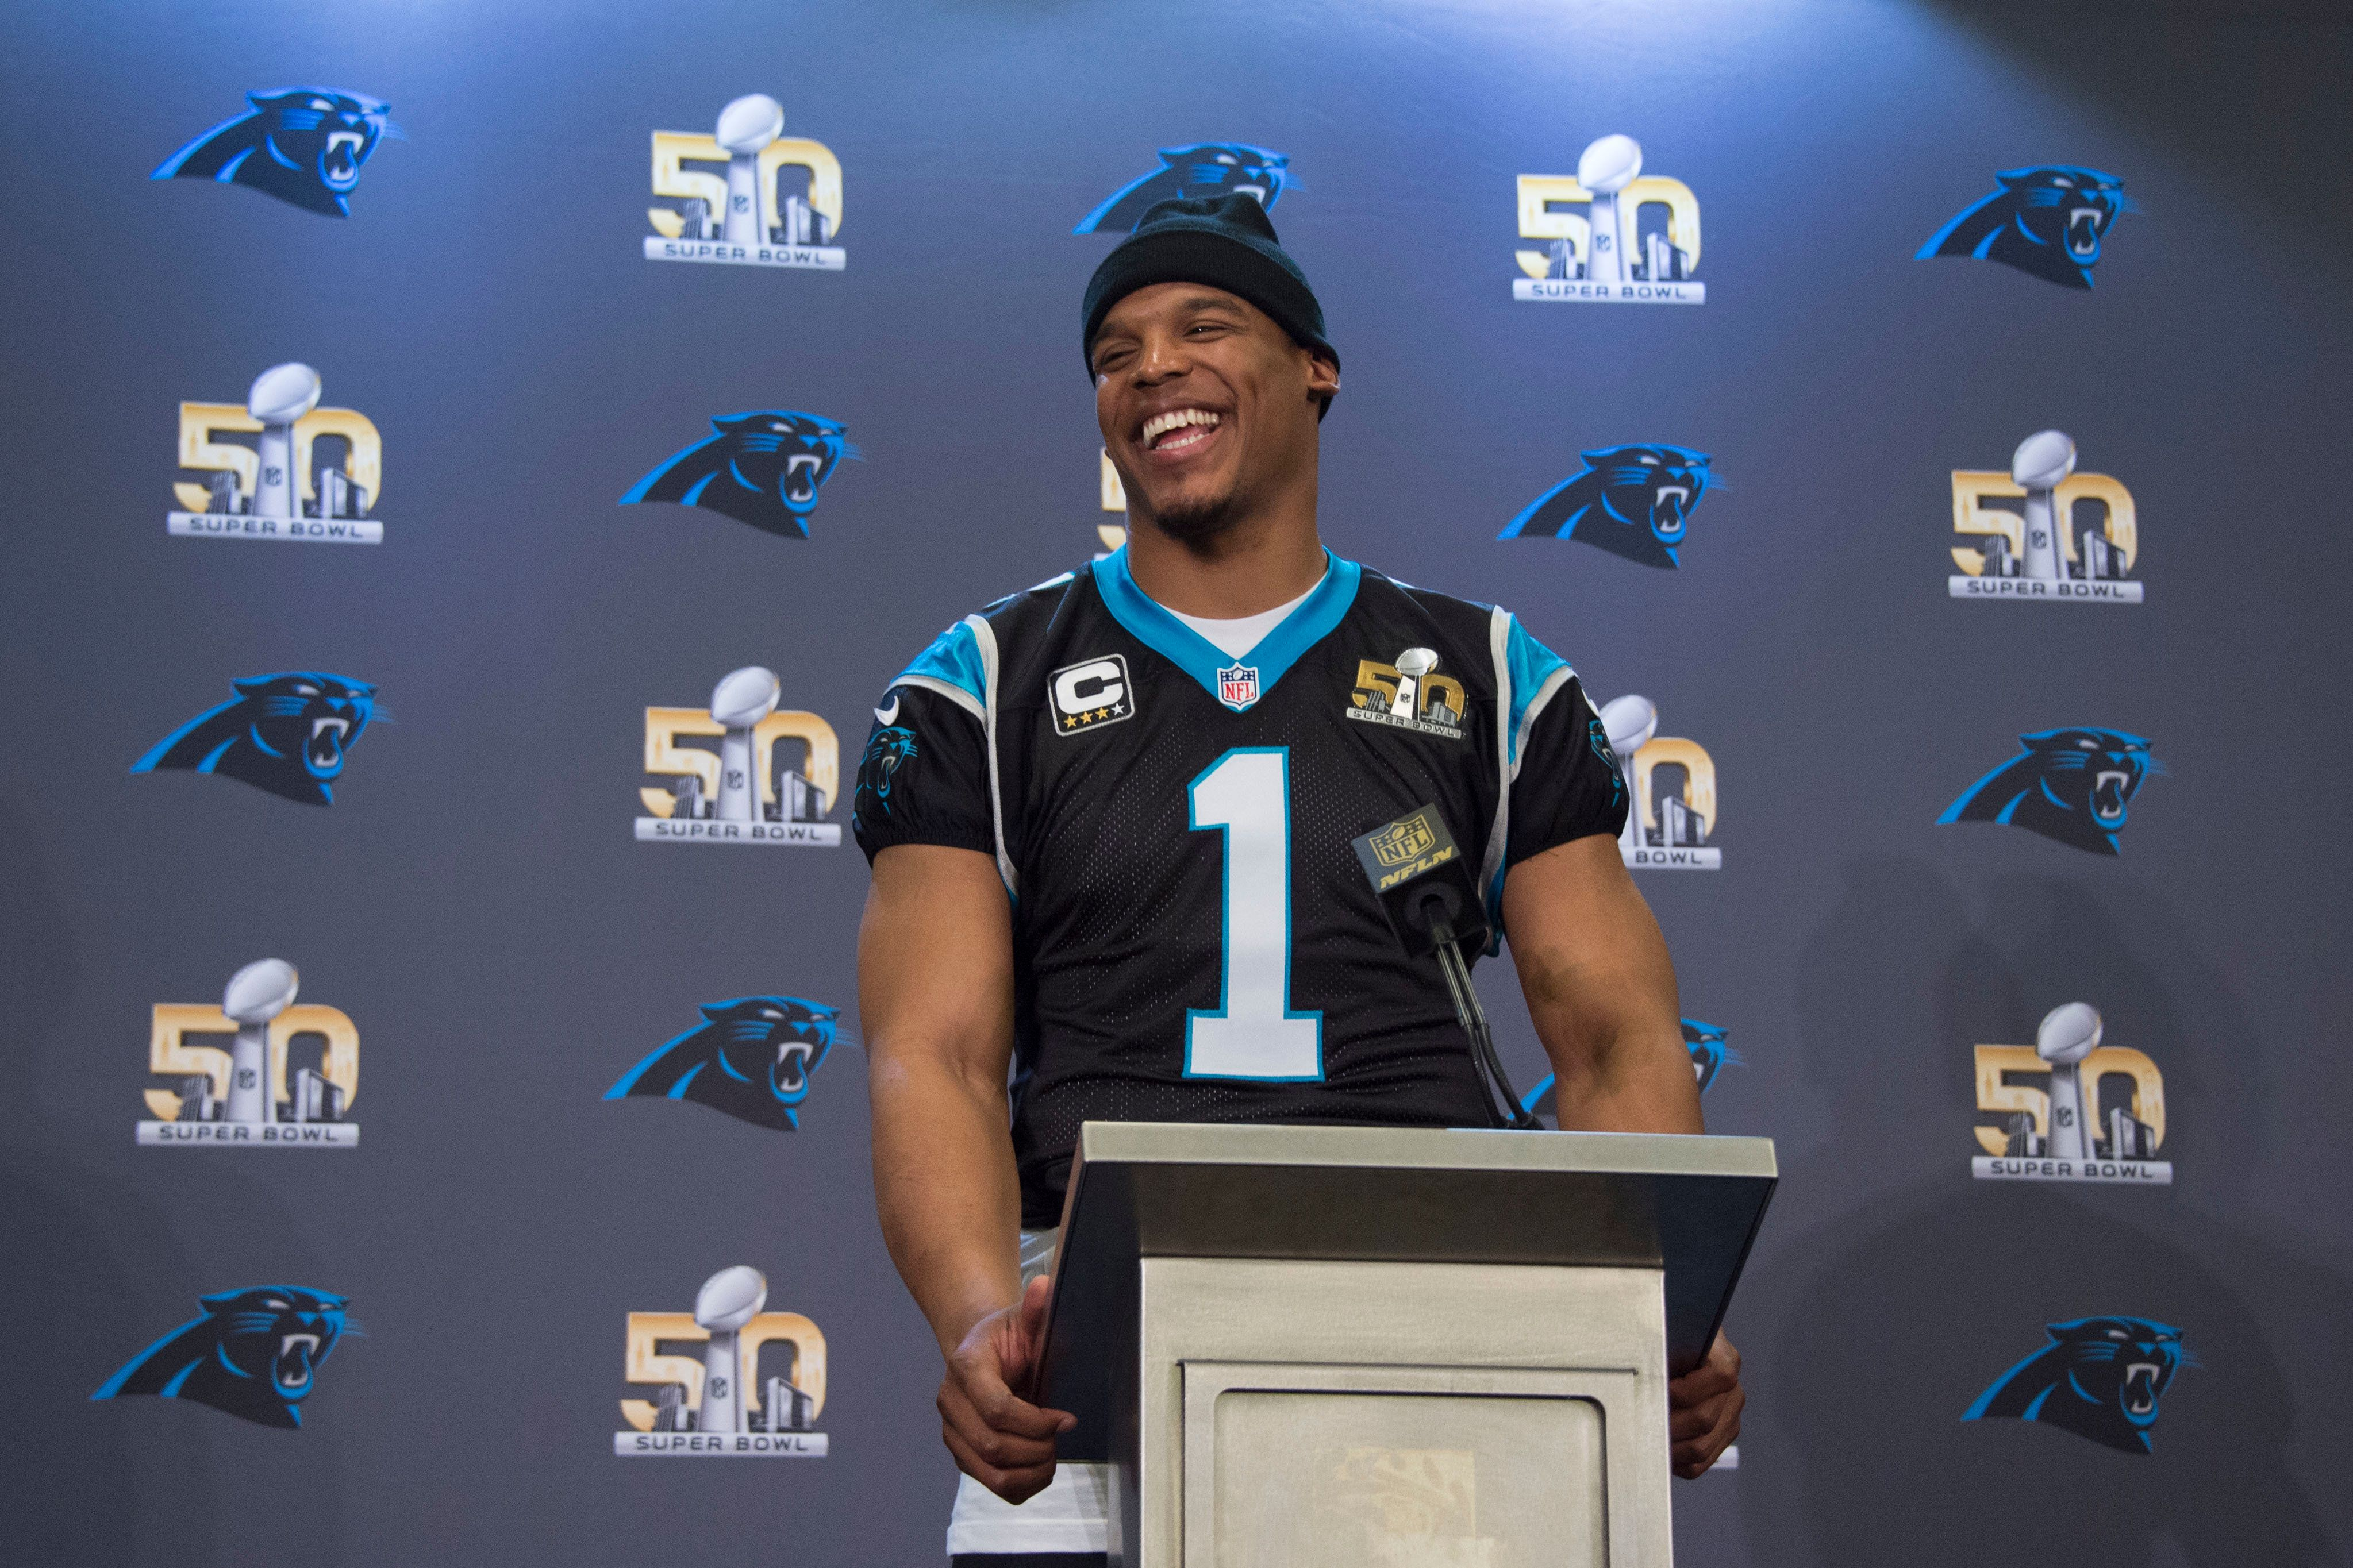 February 4, 2016; San Jose, CA, USA; Carolina Panthers quarterback Cam Newton (1) addresses the media in a press conference prior to Super Bowl 50 at San Jose Convention Center. Mandatory Credit: Kyle Terada-USA TODAY Sports